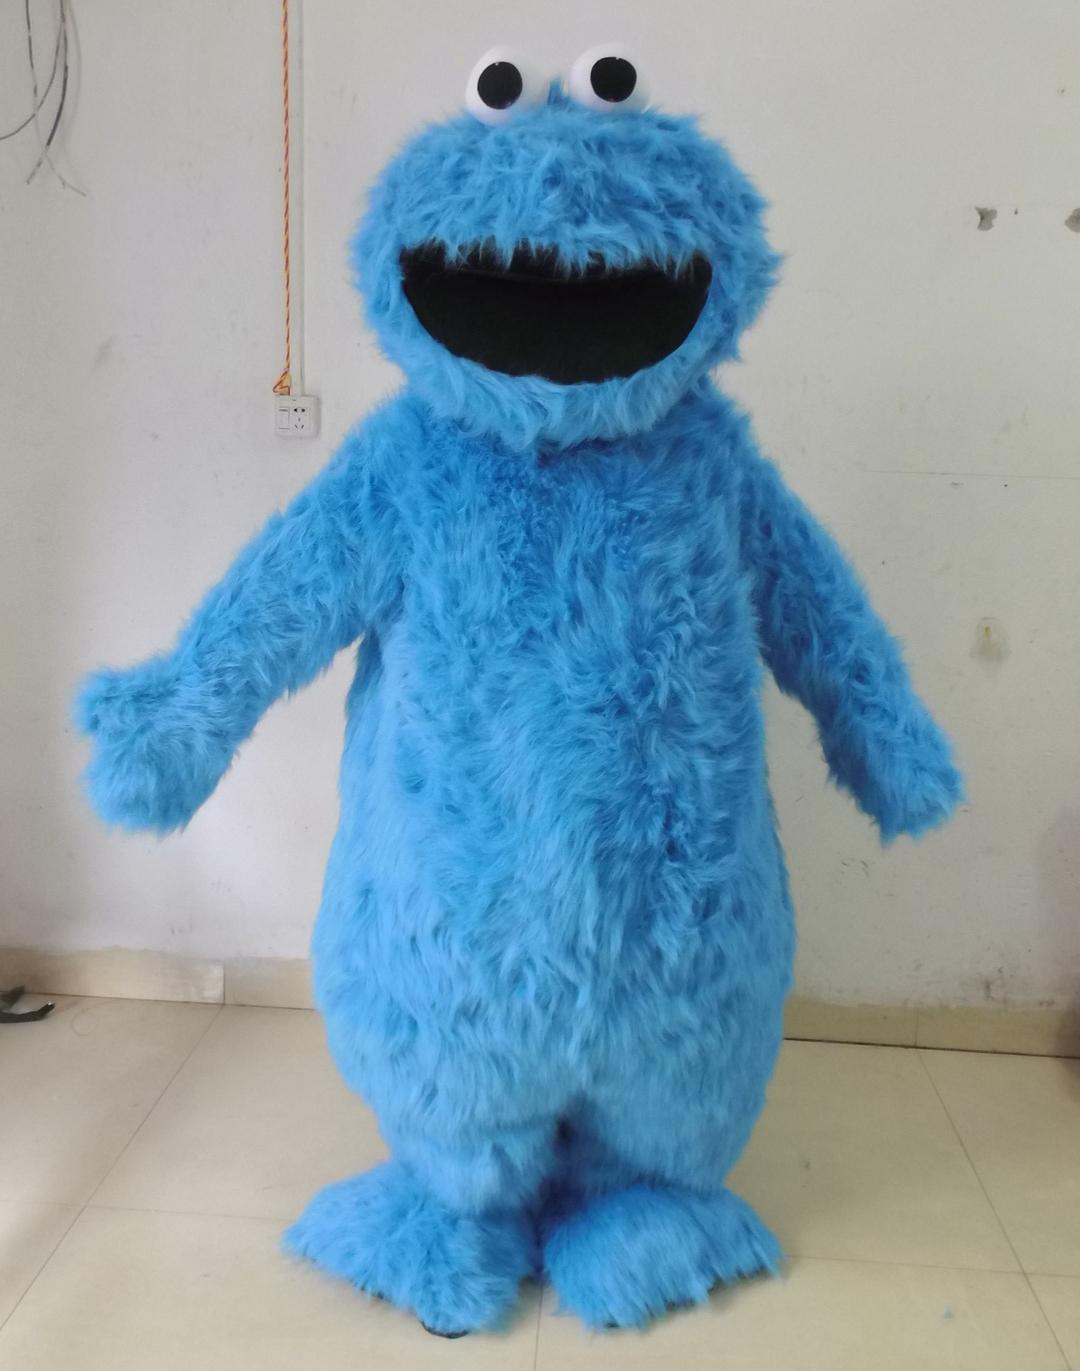 0524 Adult Cookie Monster Mascot Costume With Mini Fan Inside The Head For Sale Discount Halloween Costumes Costumes For Adults From Smartcostumes ... & 0524 Adult Cookie Monster Mascot Costume With Mini Fan Inside The ...